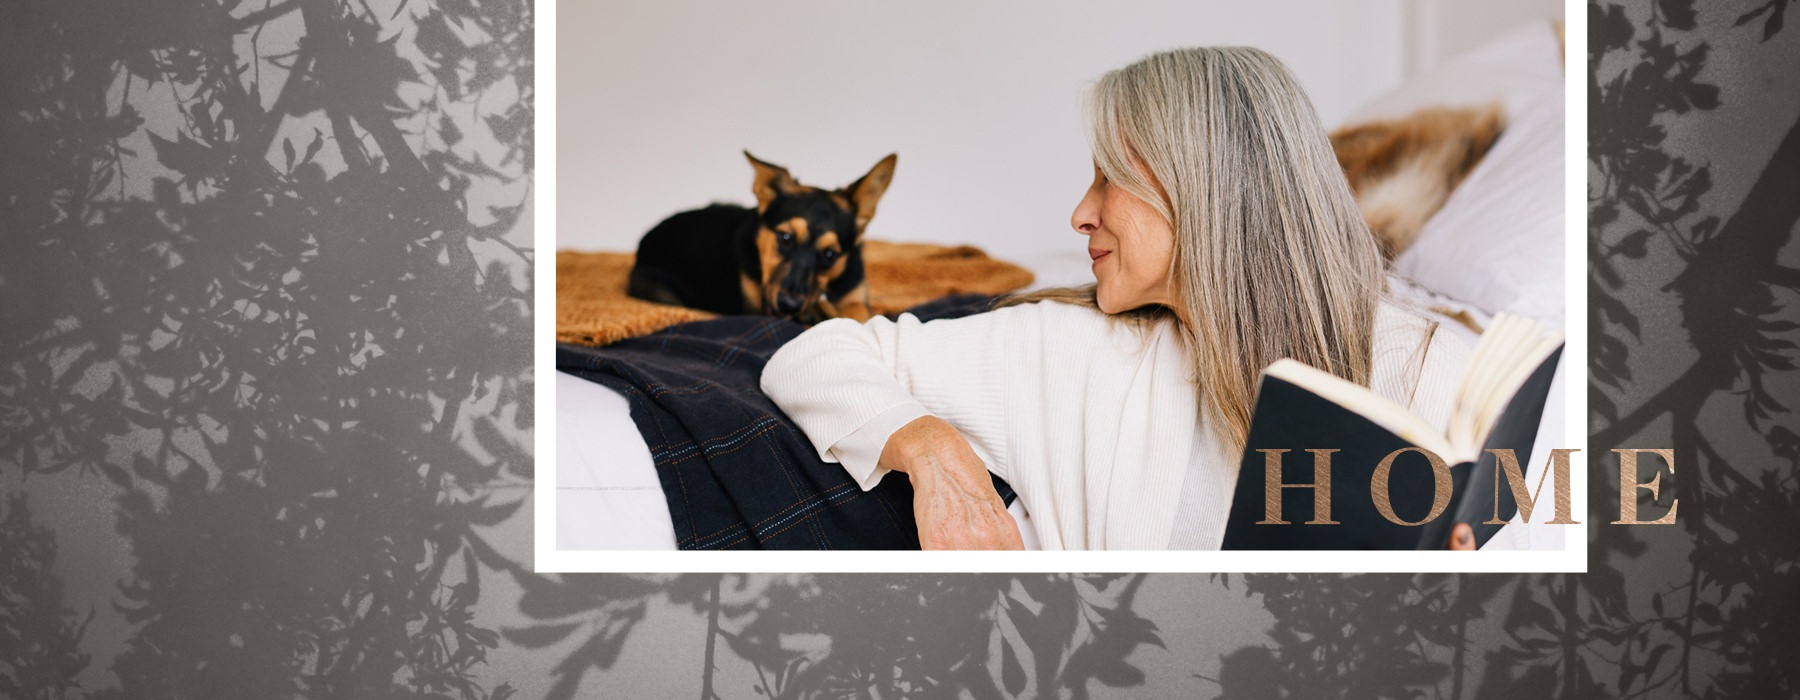 collage of woman on couch with a book, looking back at her dog with background image of trees